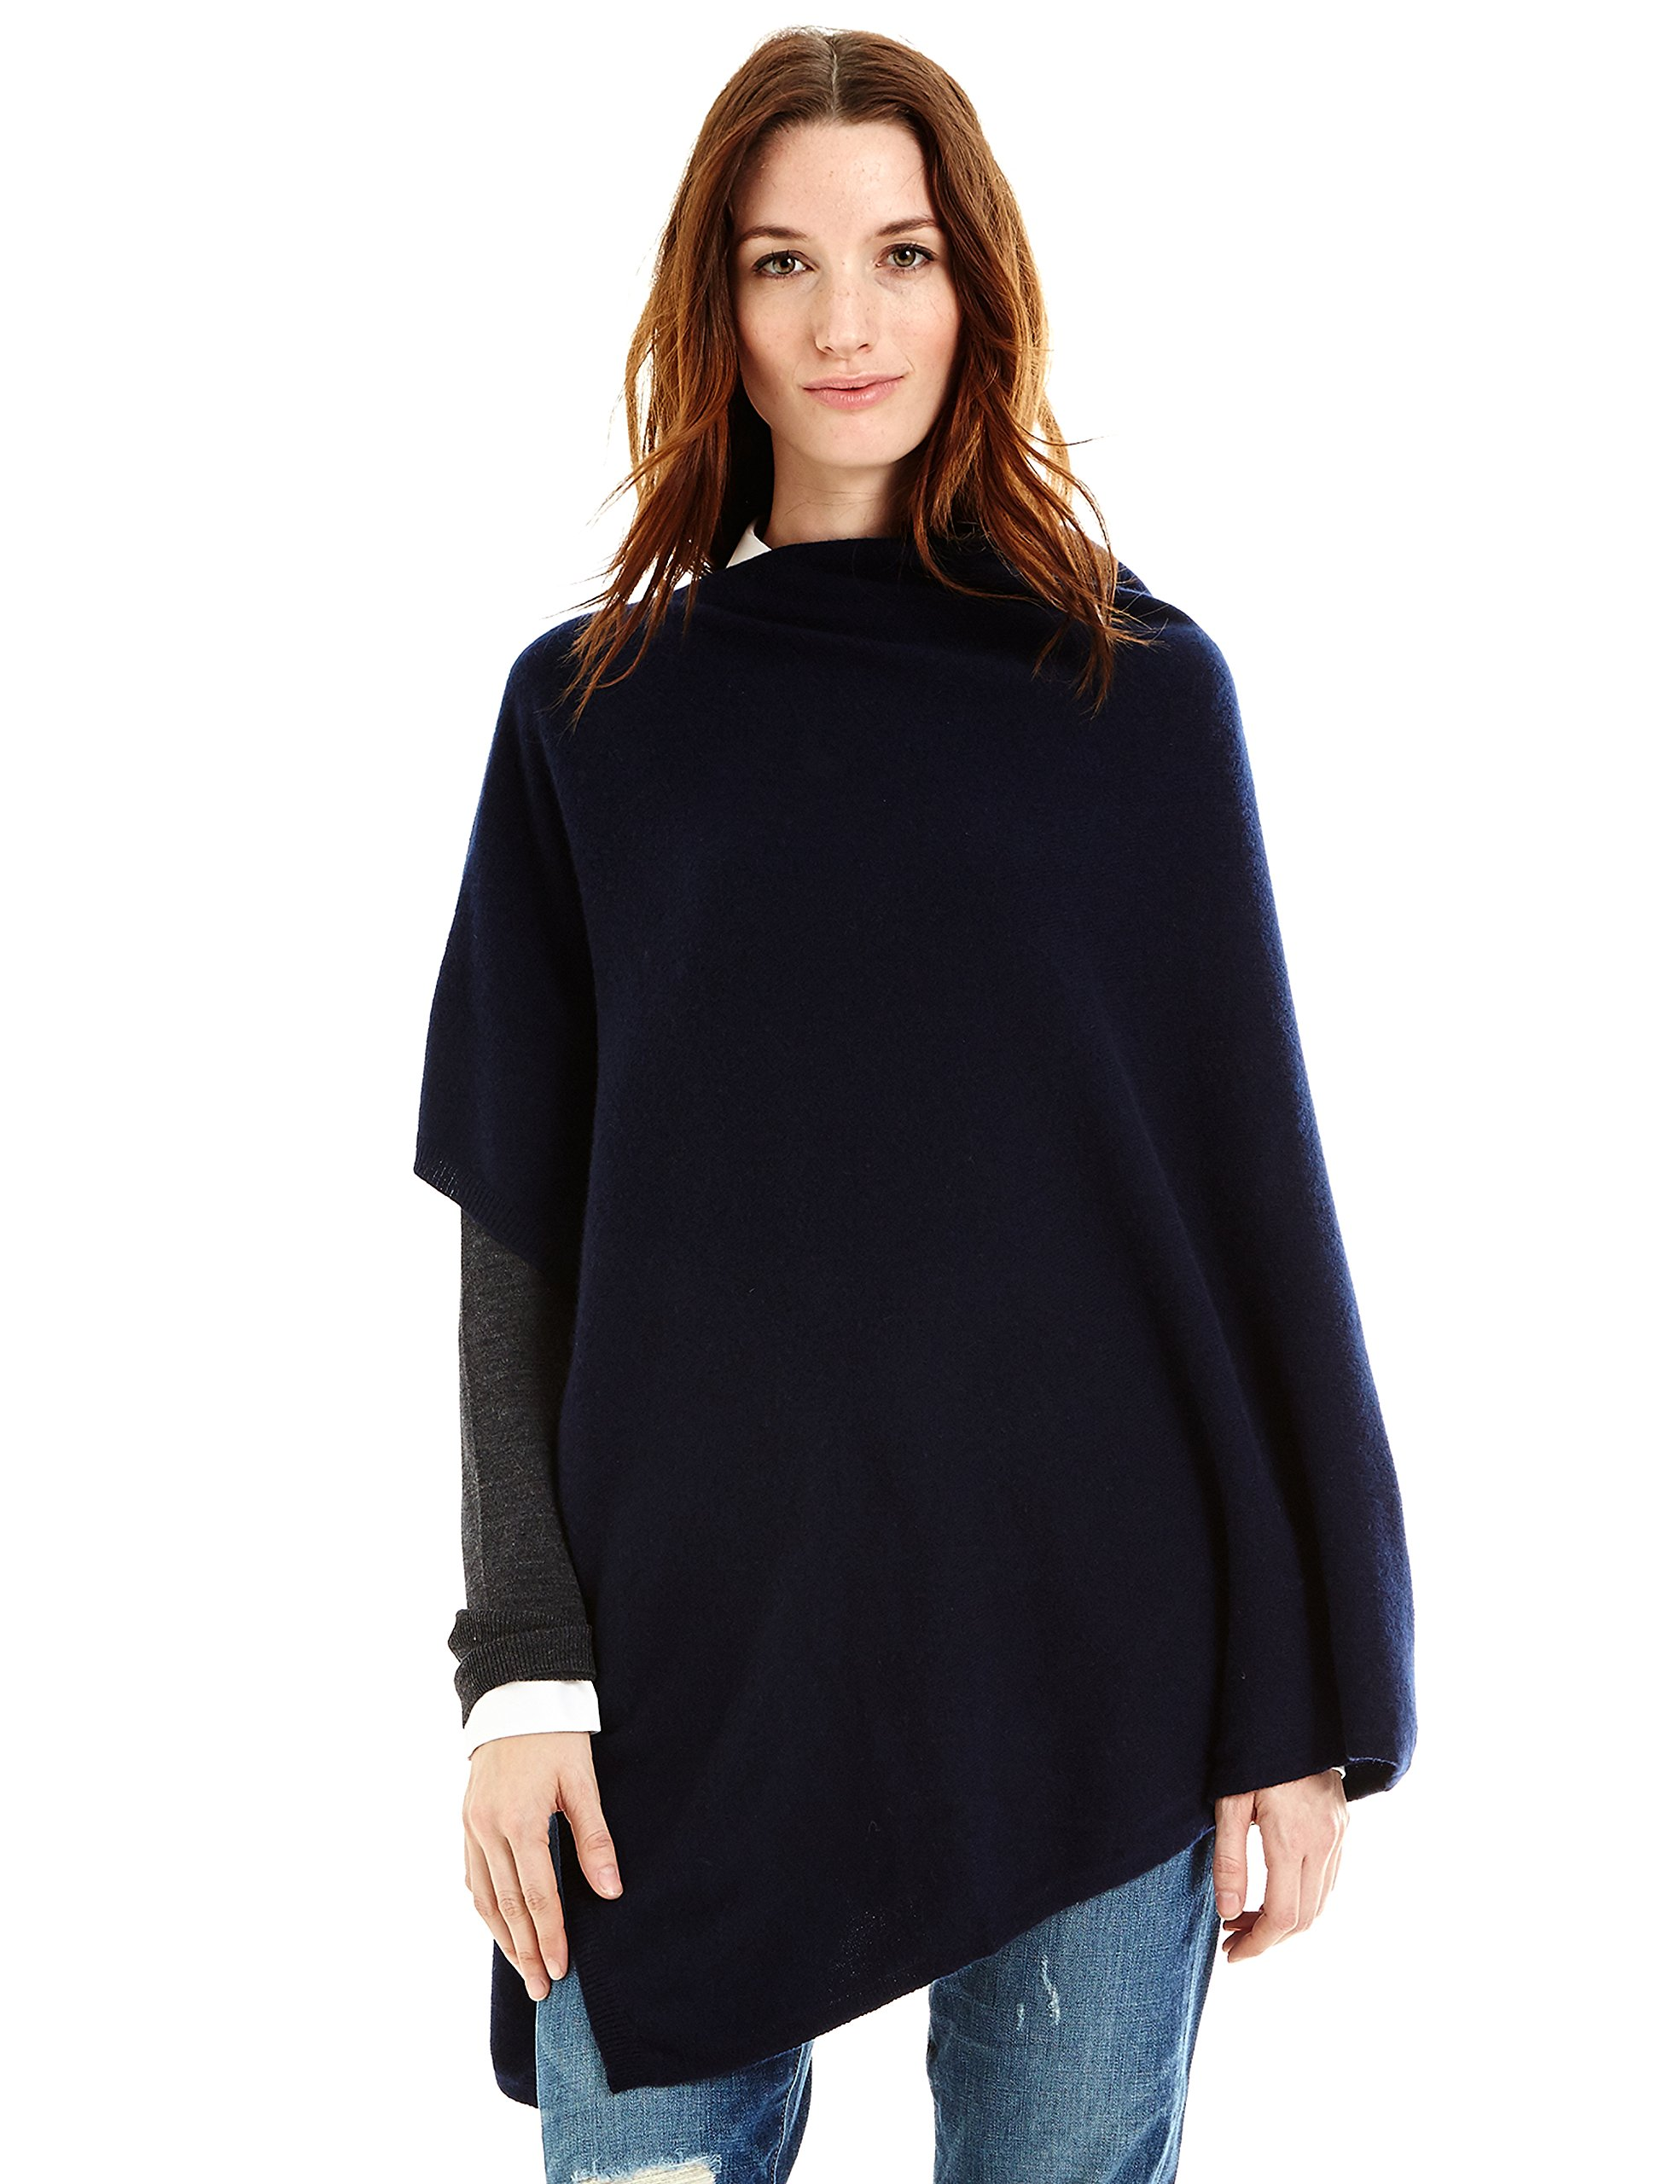 New York Cashmere 100% Pure Cashmere Draped Poncho (French Navy)